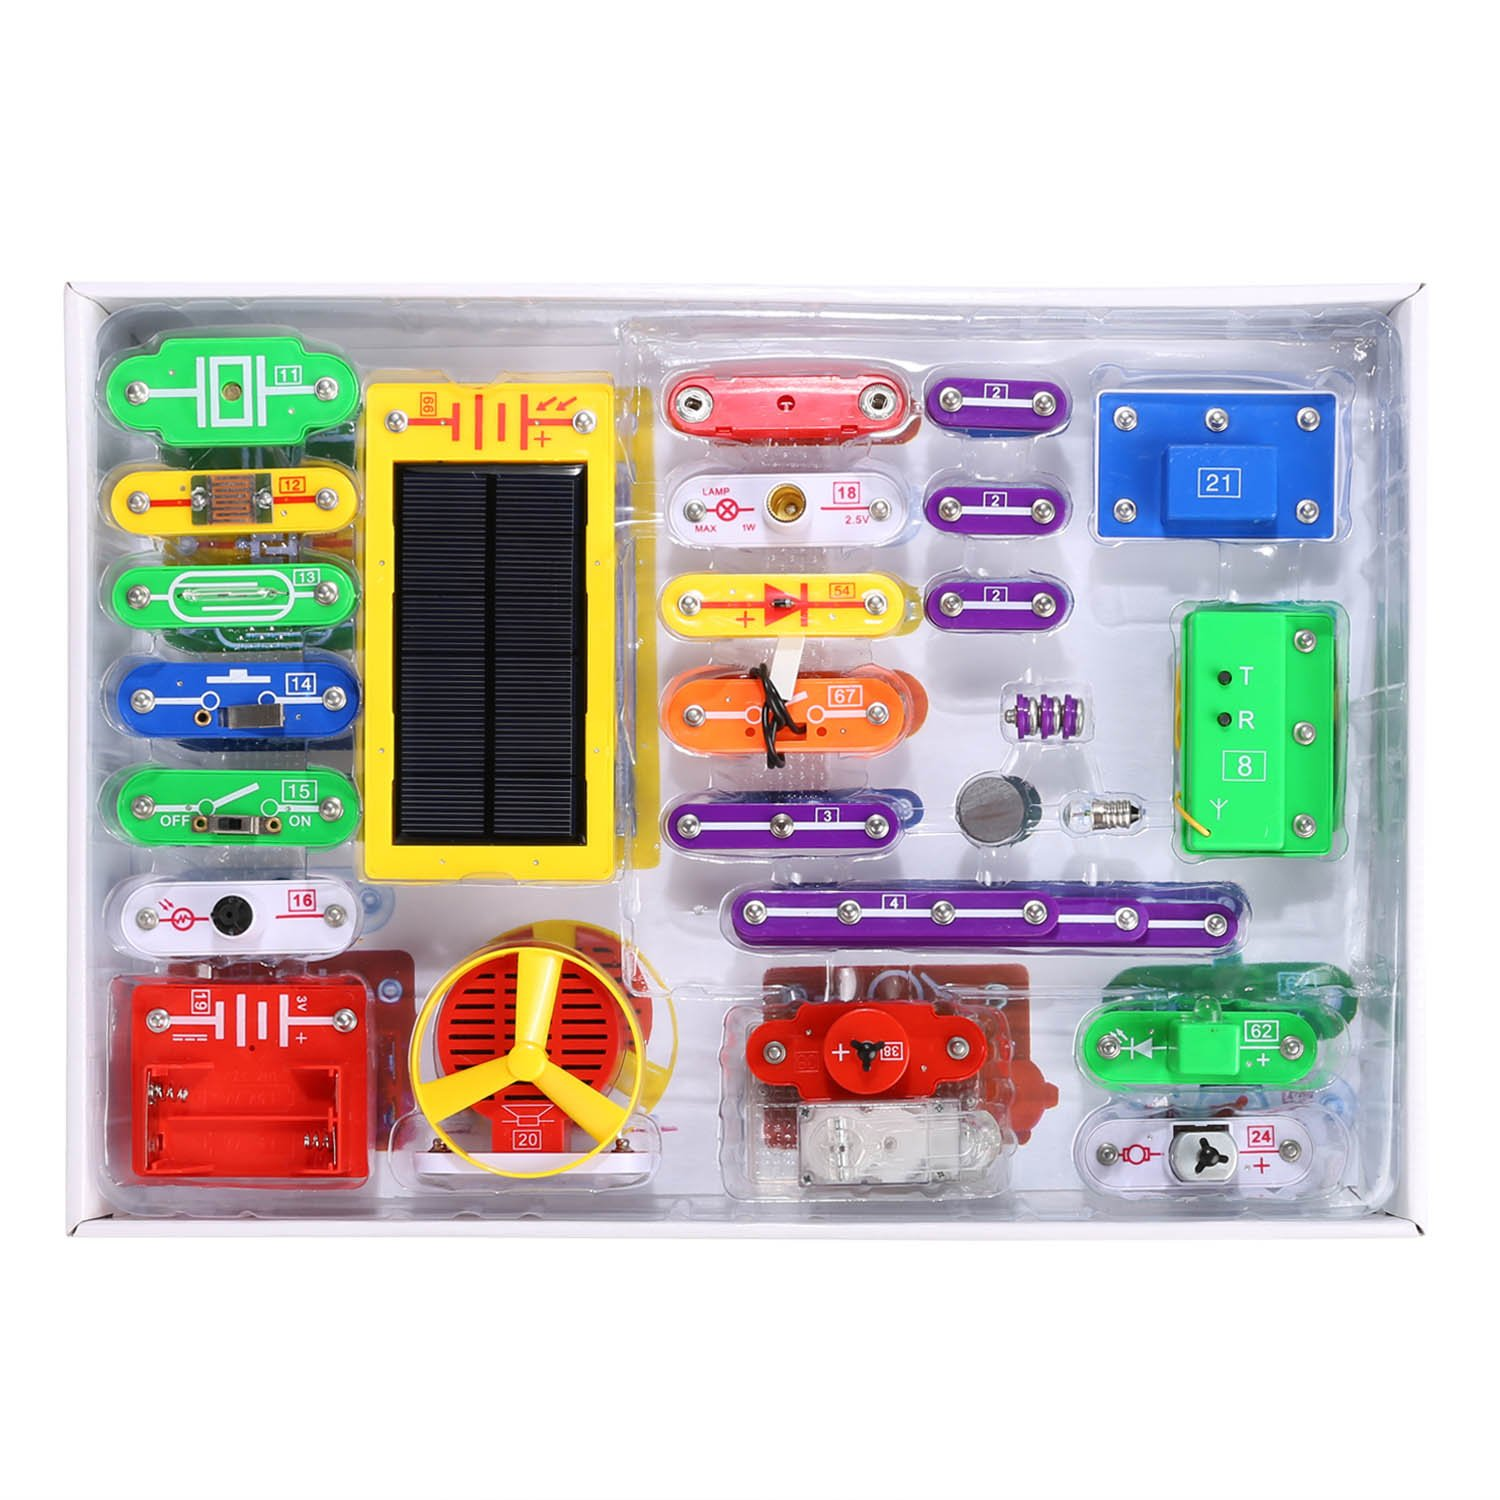 Anfan Electric Circuits Kitkids Electronics Exploration Snap Snaptricity Kit Build 75 Projects Kitsolar Block Diy Toy For Child Type 2 Toys Games